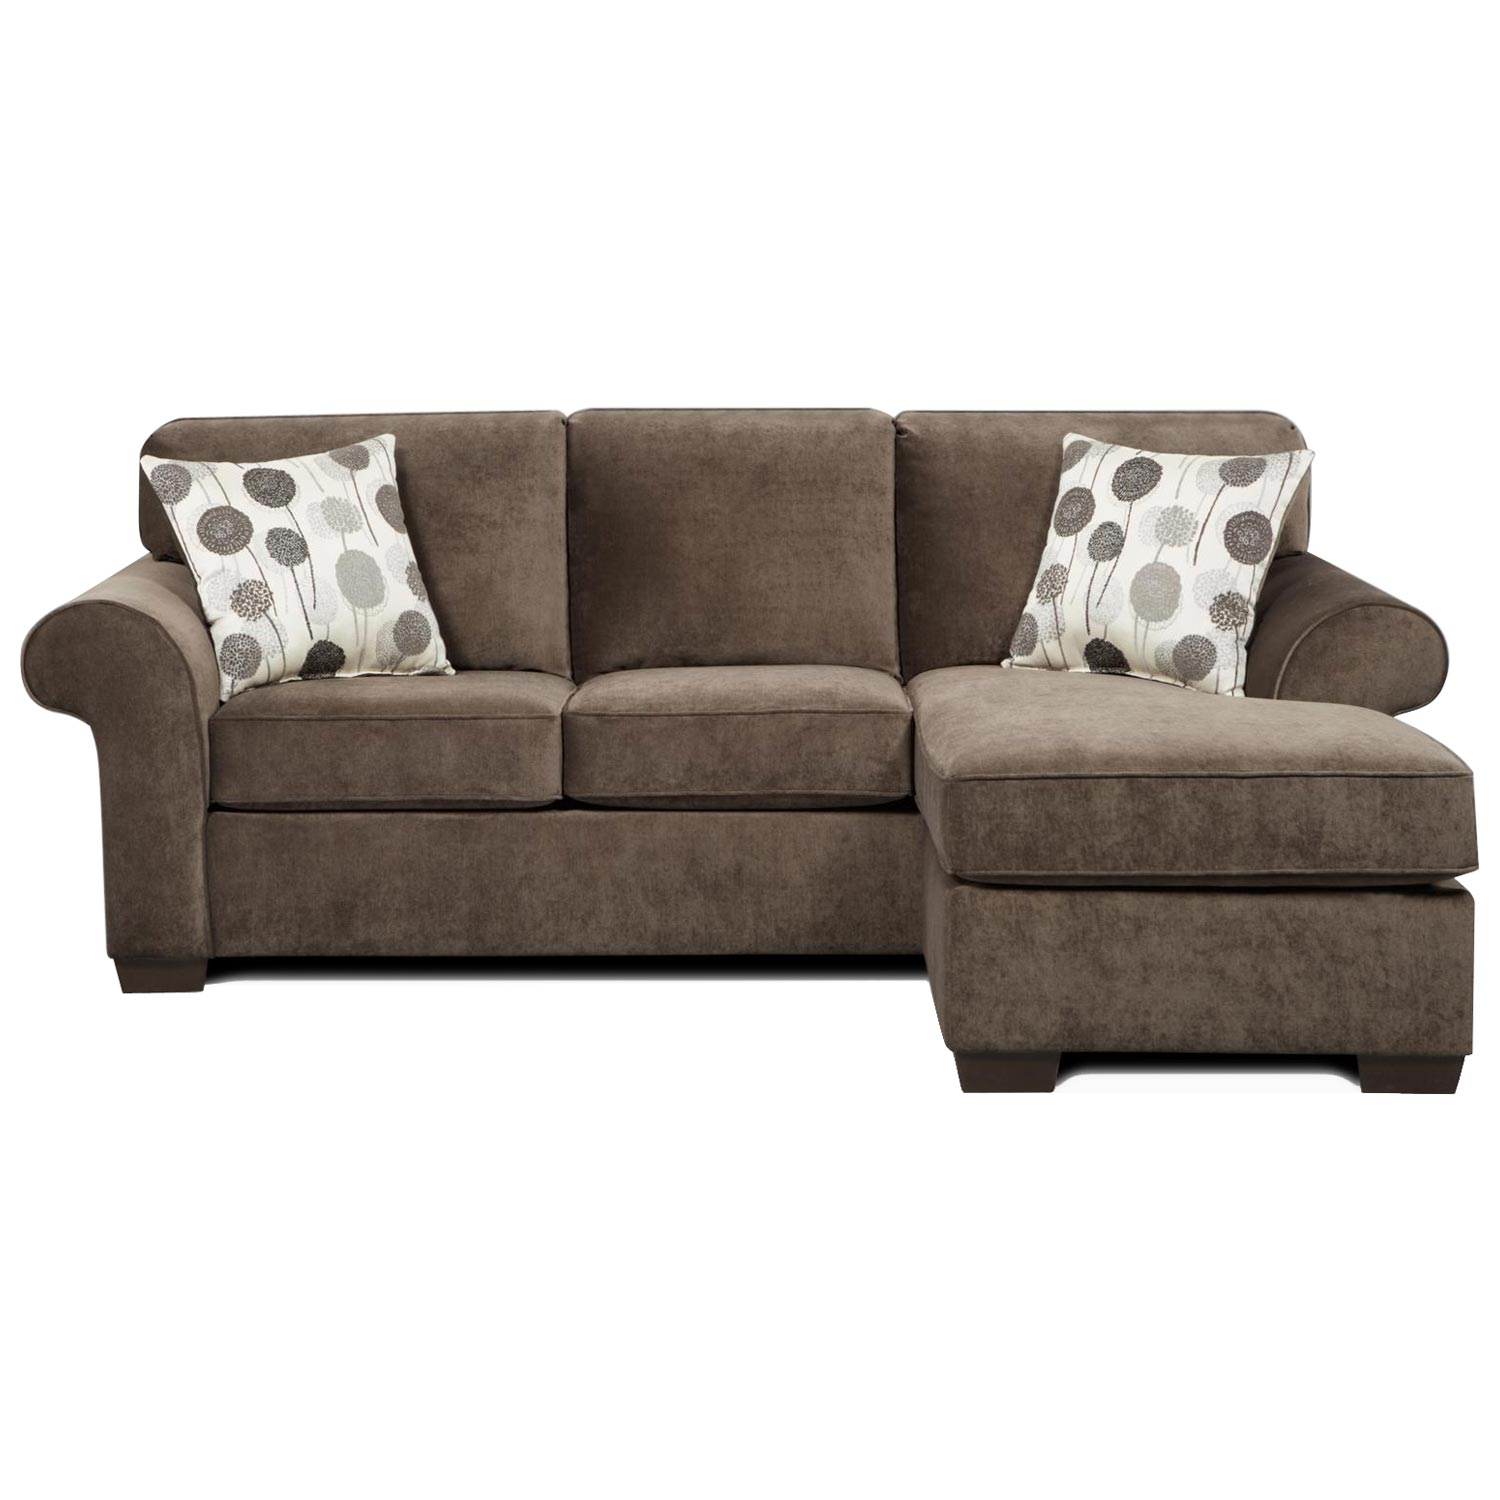 Chaises Elizabeth Worcester Transitional Sleeper Sofa Chaise Elizabeth Ash Dcg